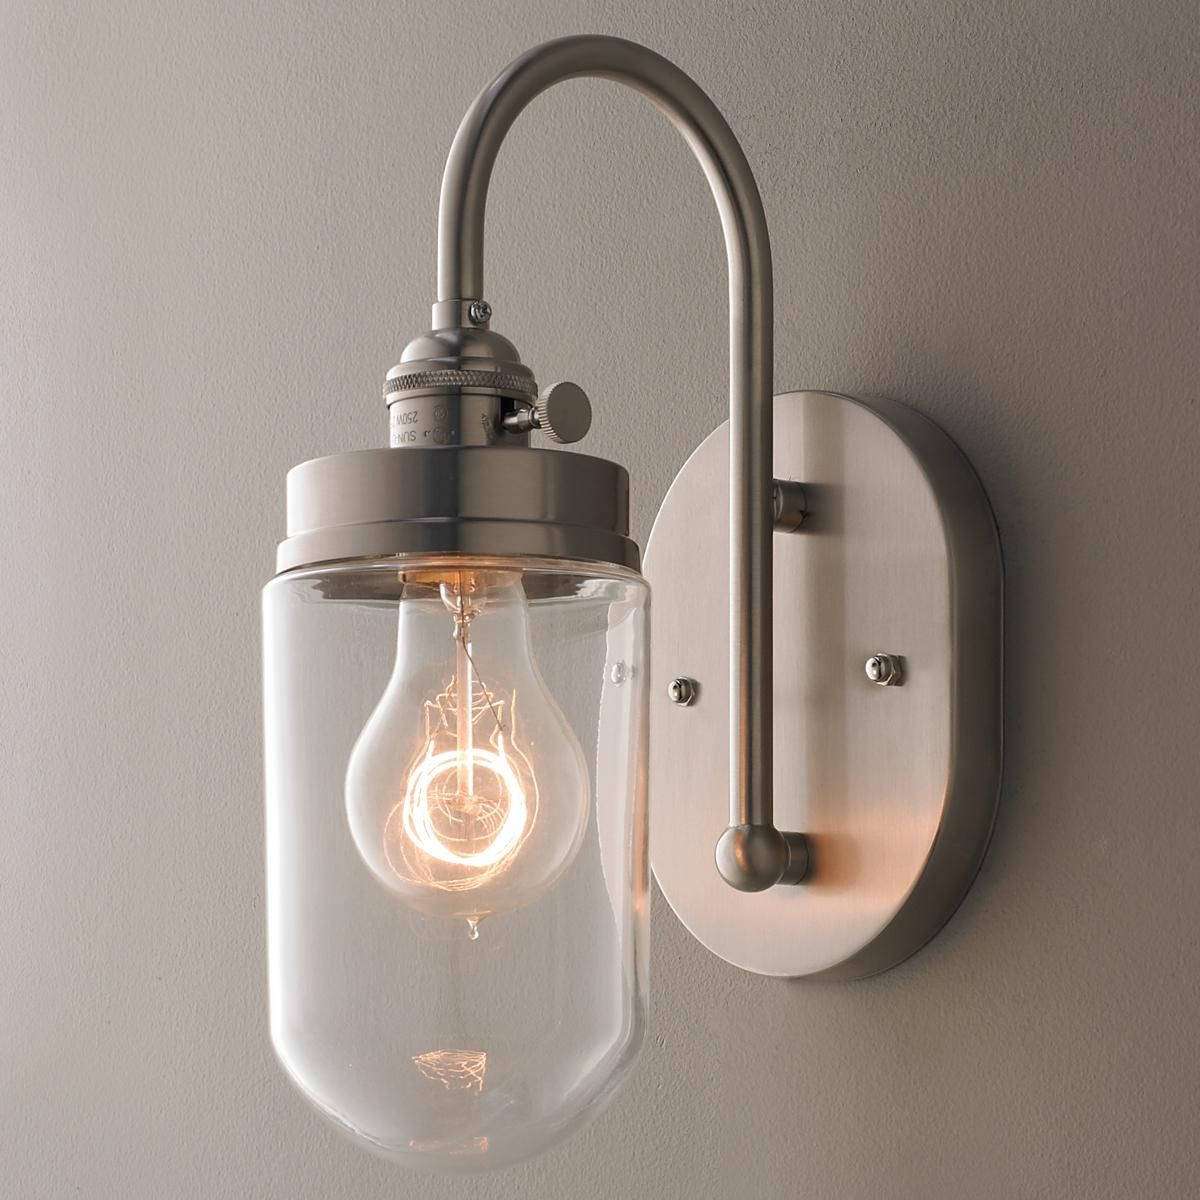 Clear Glass Jar Wall Sconce Pinterest Wall Sconces Brushed - Polished nickel bathroom wall sconces